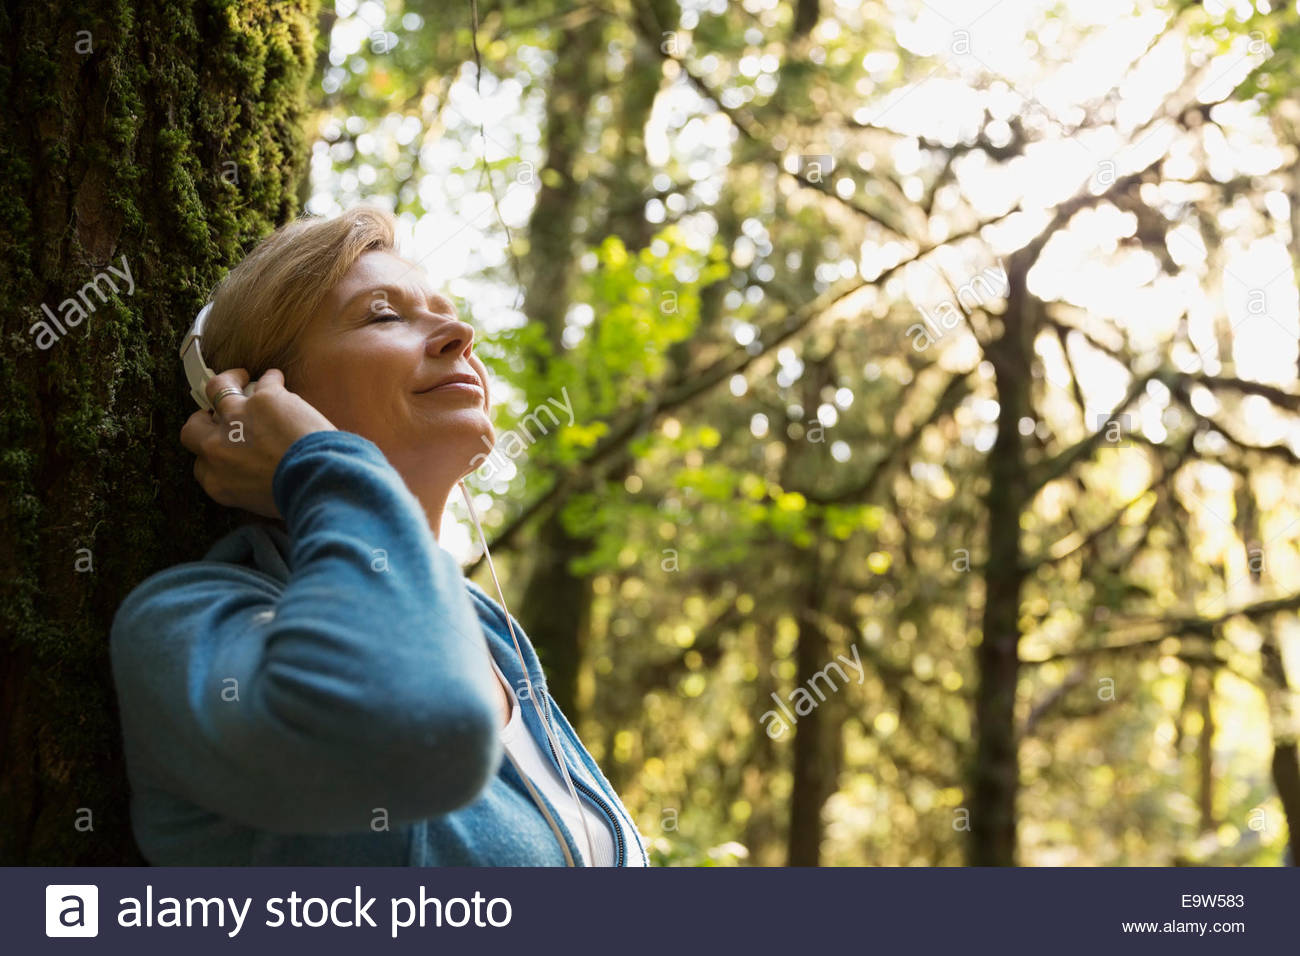 Serene woman listening to music in woods - Stock Image